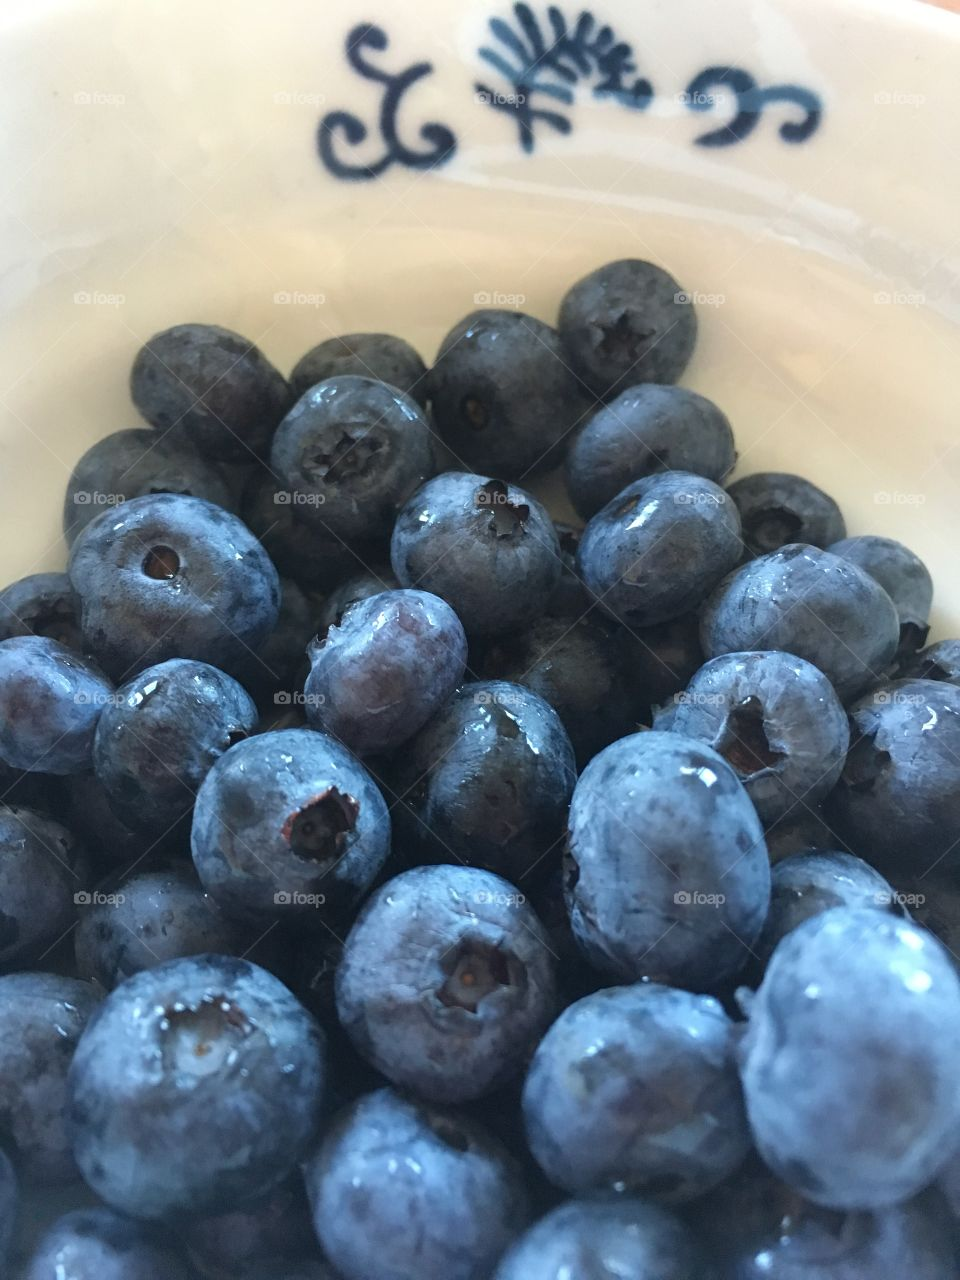 Blueberries in a white ceramic bowl with blue details.  Close up